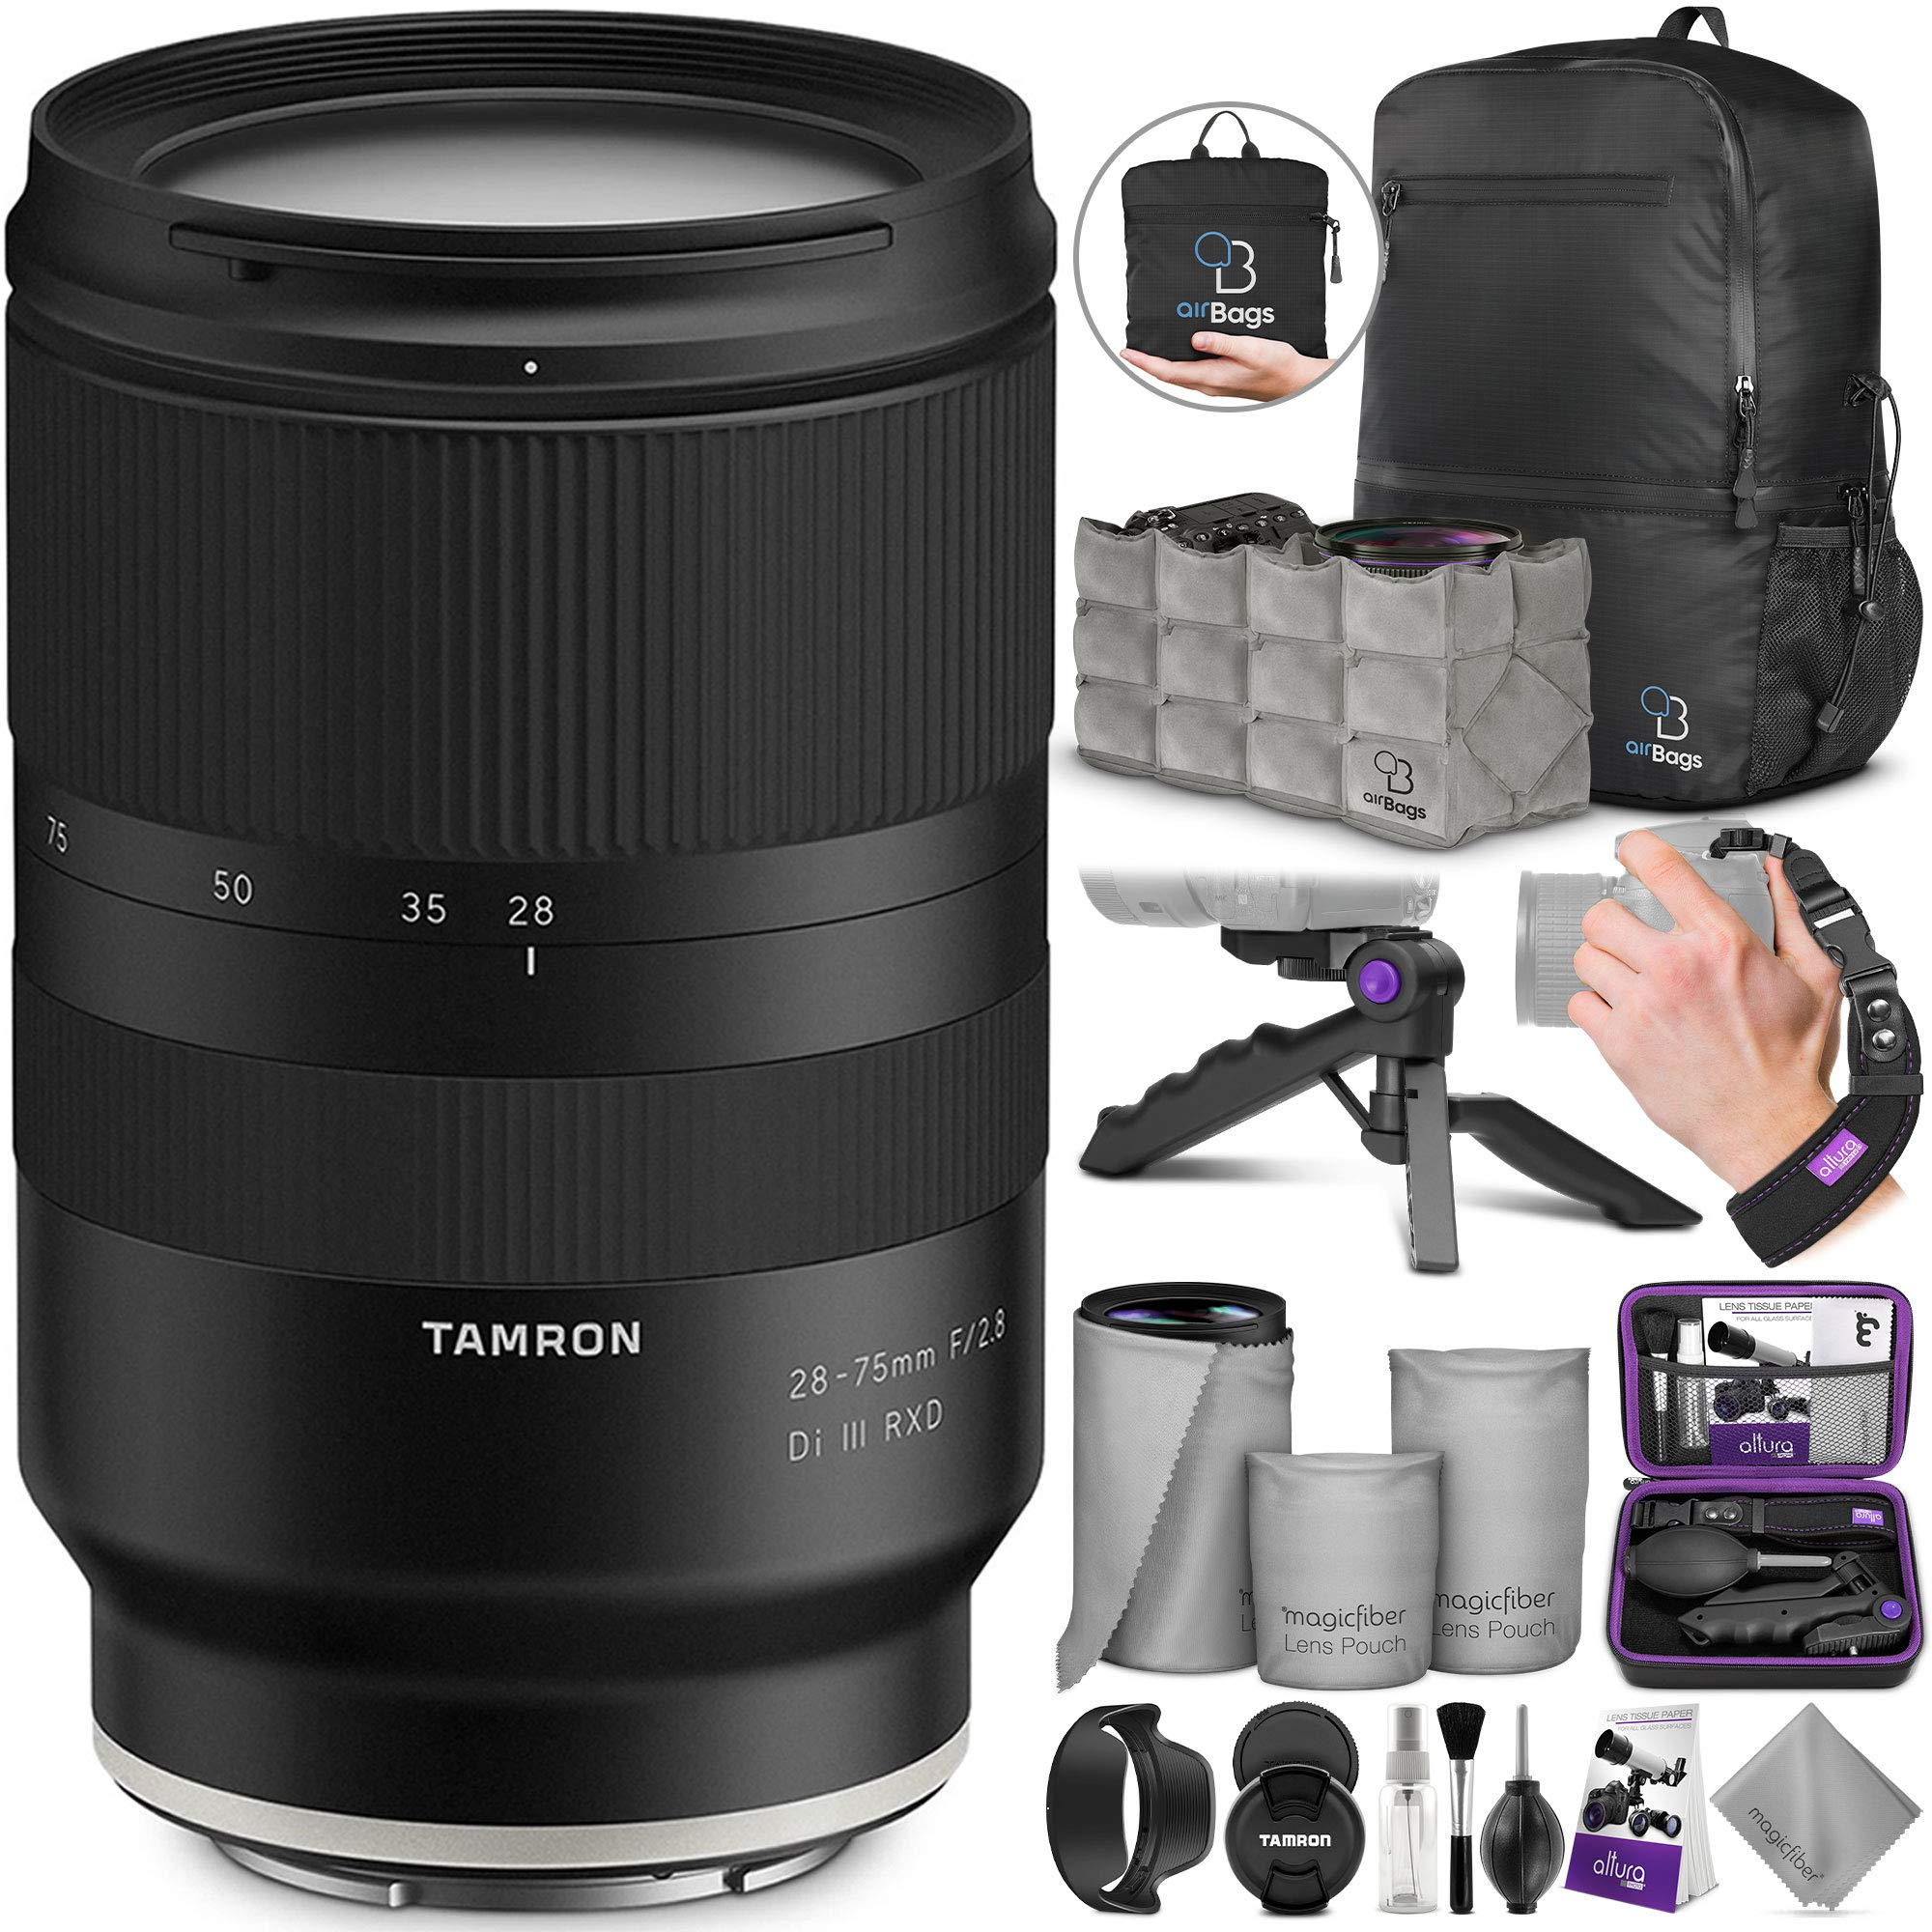 Tamron 28-75mm f/2.8 Di III RXD Lens for Sony E Mount Cameras with Altura Photo Essential Accessory and Travel Bundle by Tamron